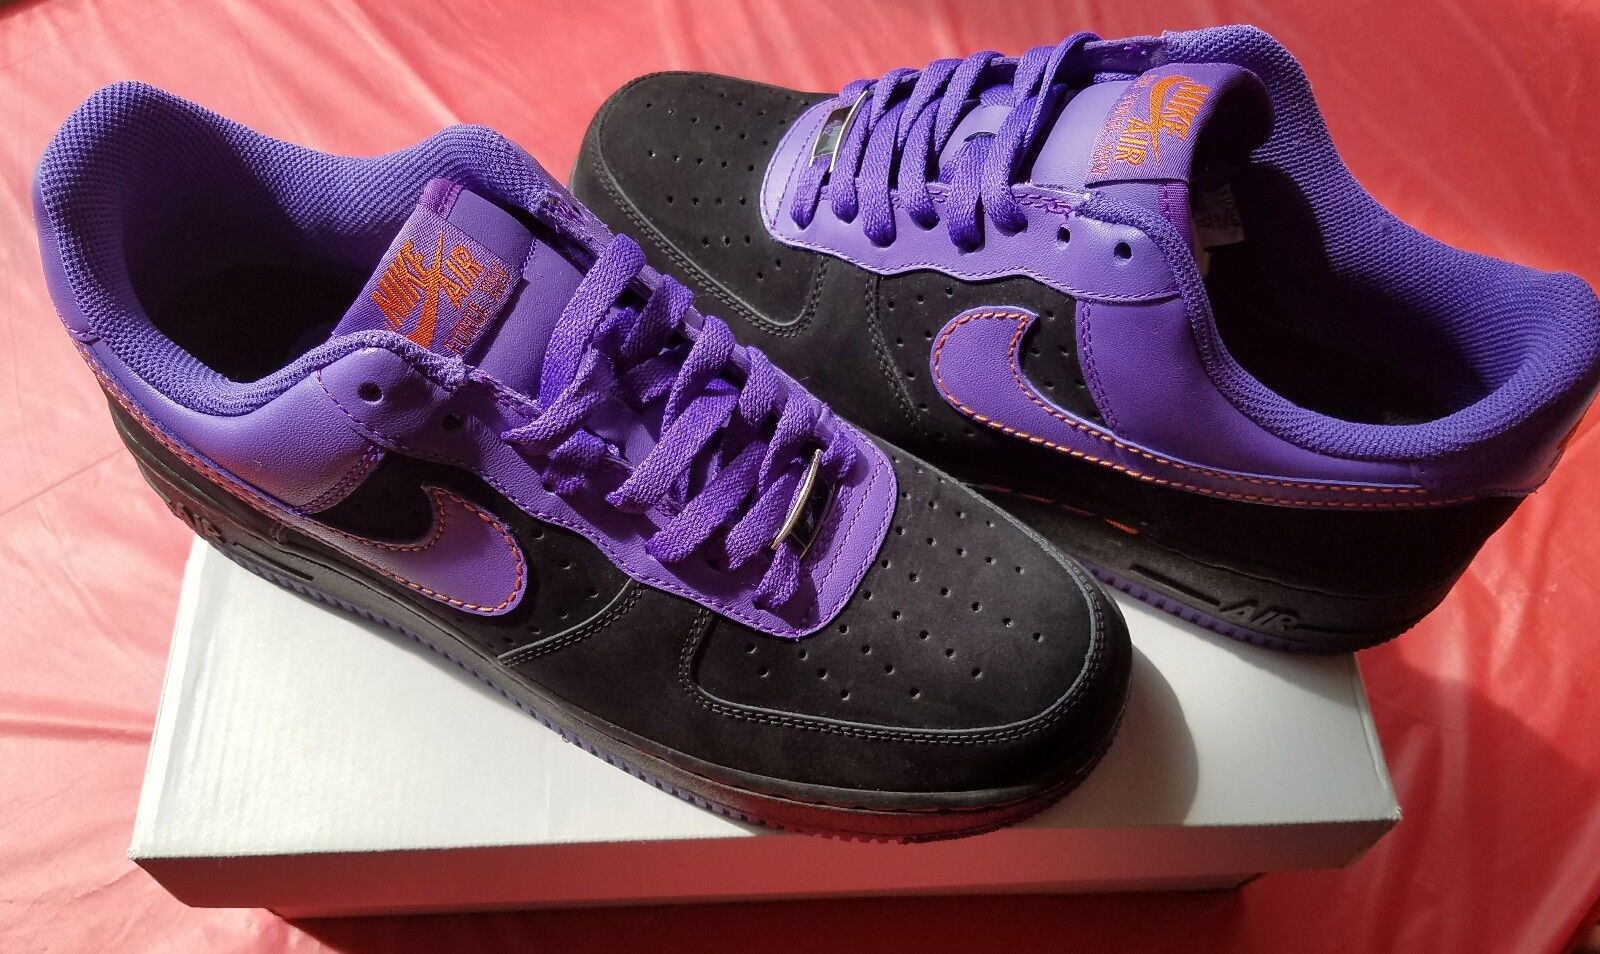 Nike Air Force 1 Low 2007 Barkley Pack Size 9